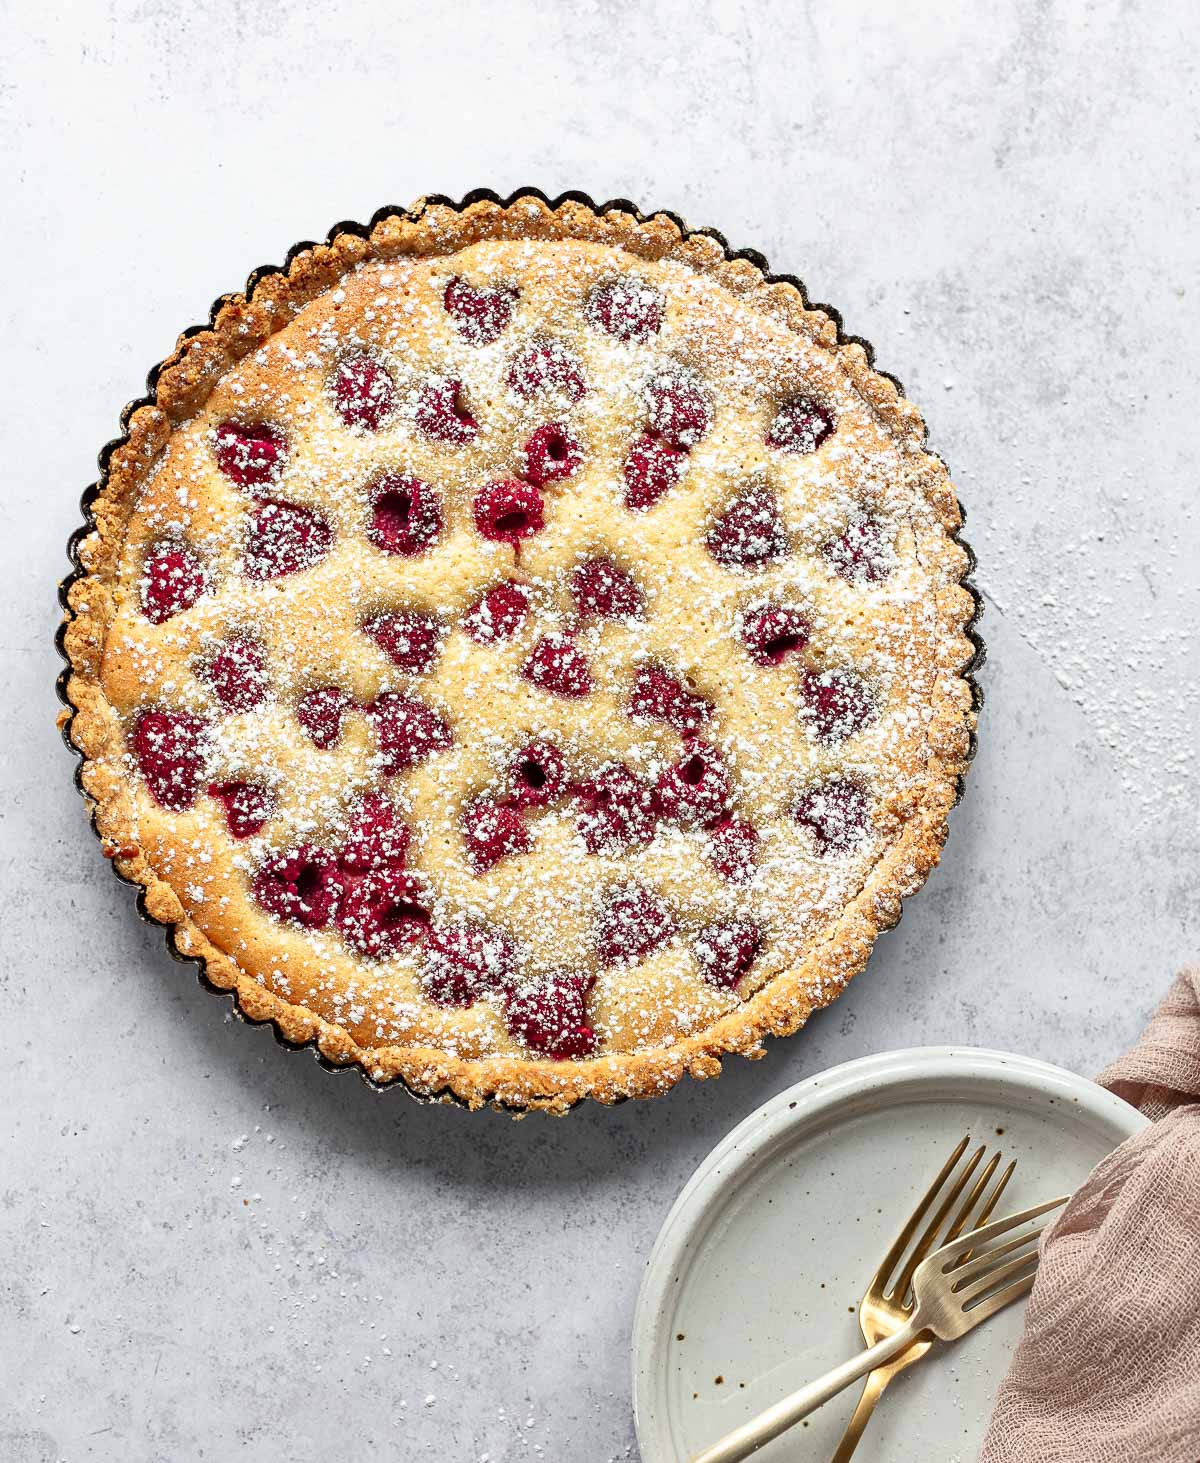 A photo of raspberry almond tart filled with baked frangipane cream and fresh raspberries, with serving plate and two forks.